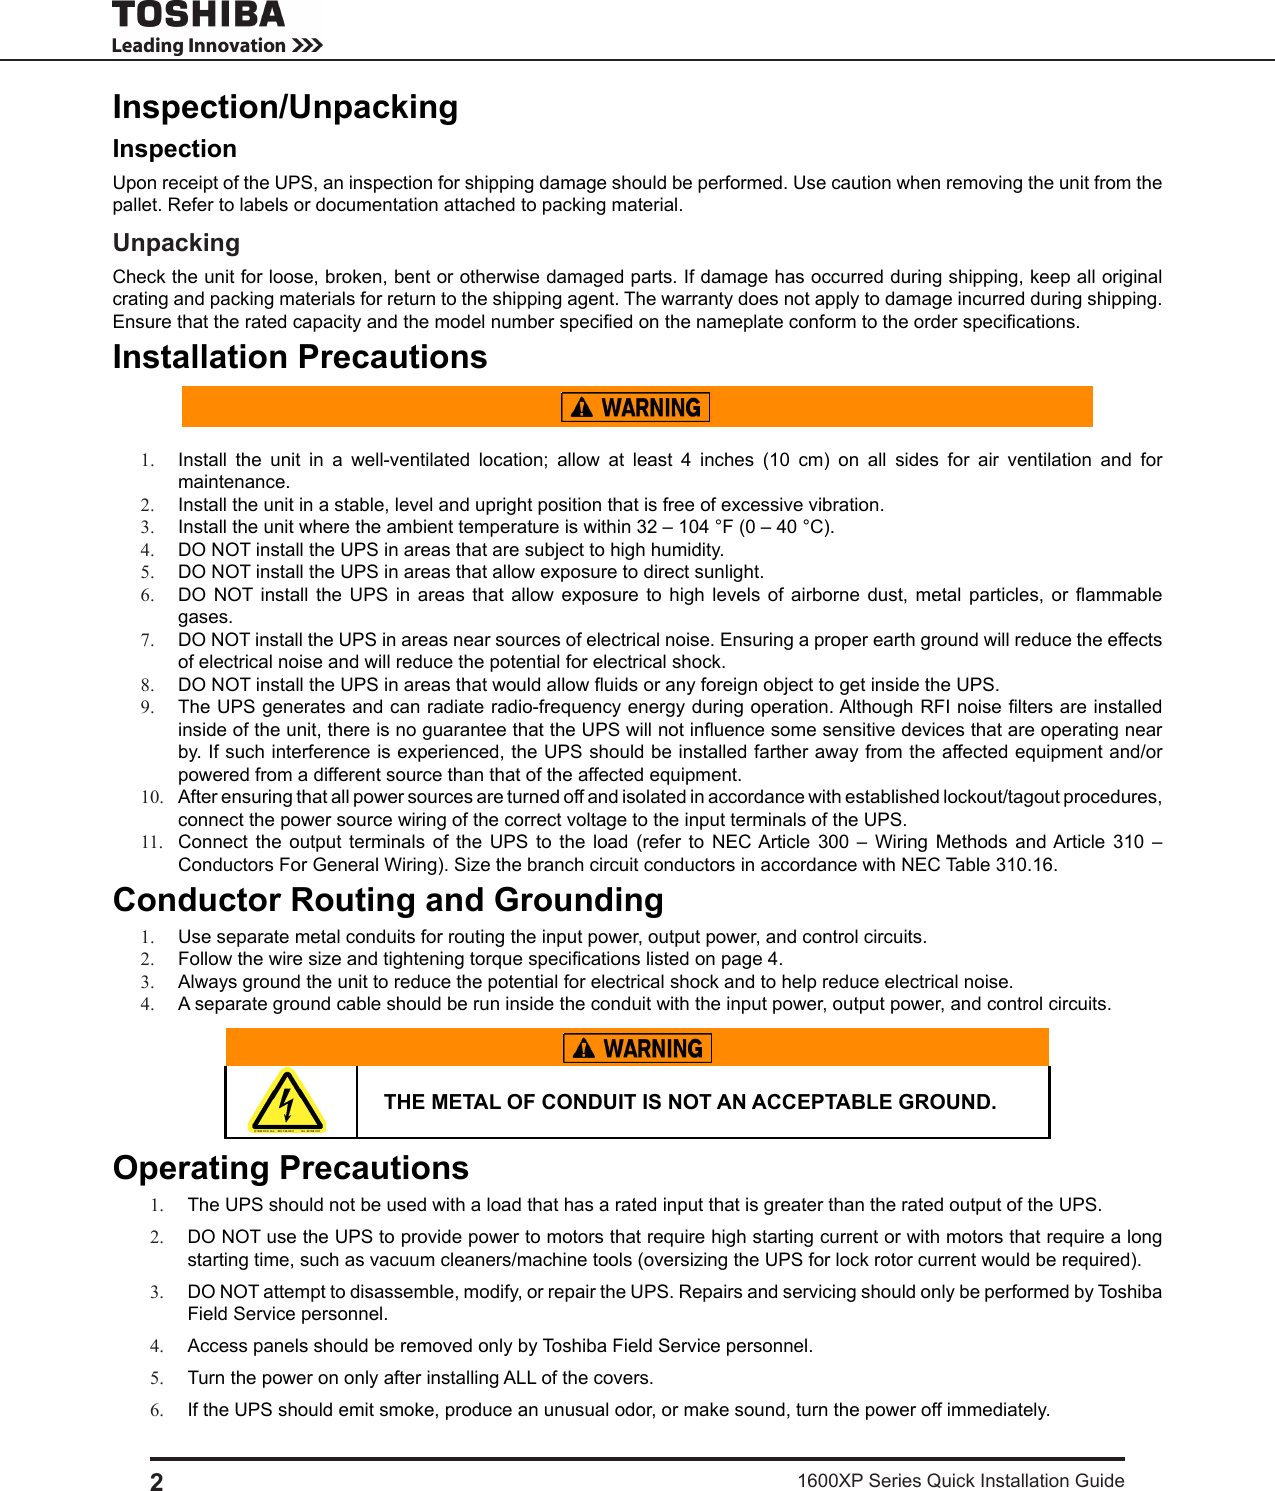 Toshiba 1600 Xp Ups Users Manual Wiring Diagram Page 2 Of 4